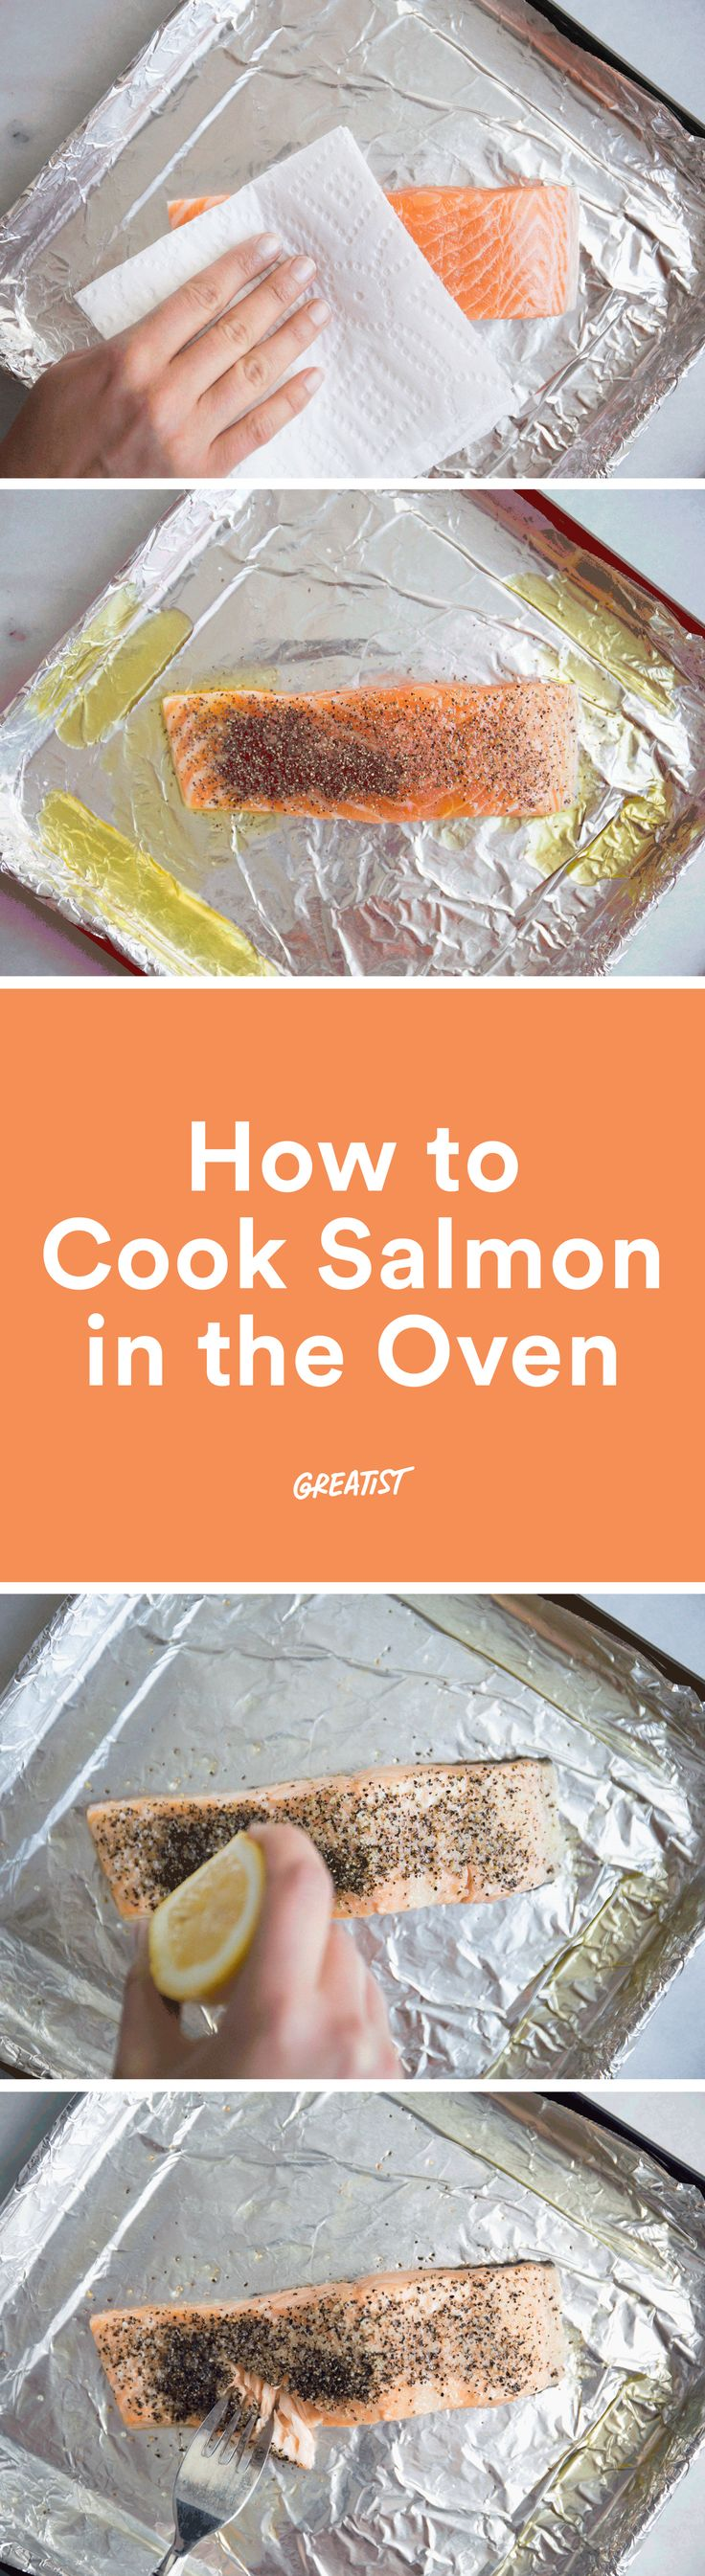 This recipe takes minimal effort, time, and cleanup. http://greatist.com/eat/how-to-cook-salmon-in-the-oven